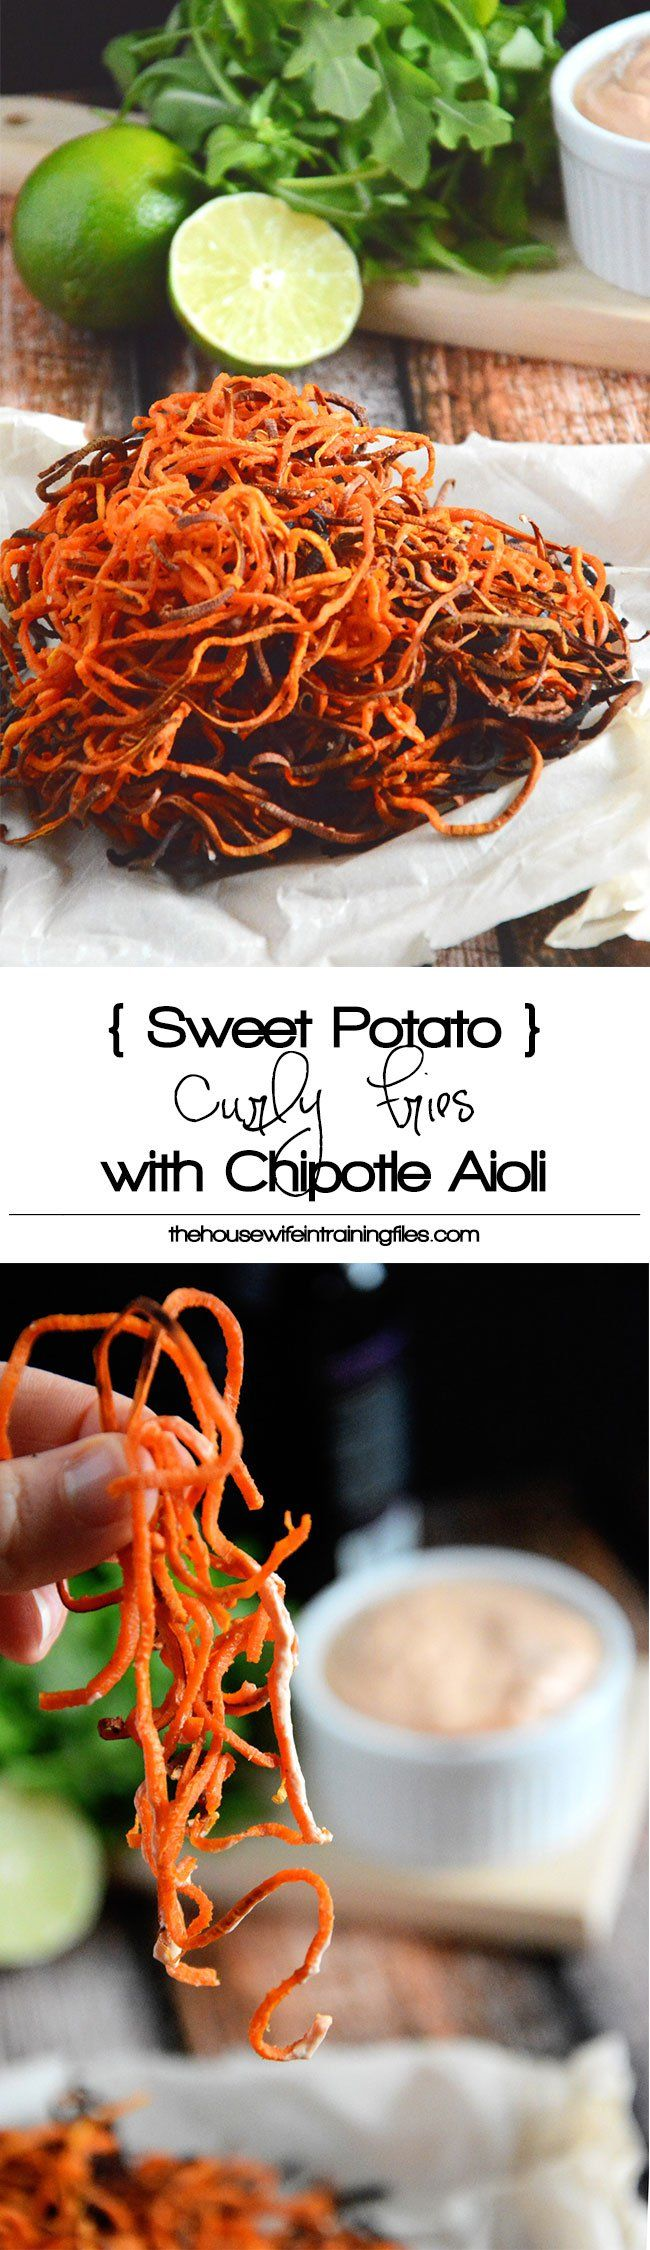 Homemade Sweet Potato Curly Fries with Chipotle Lime Aioli are a healthier spin off the classic sweet potato fry.